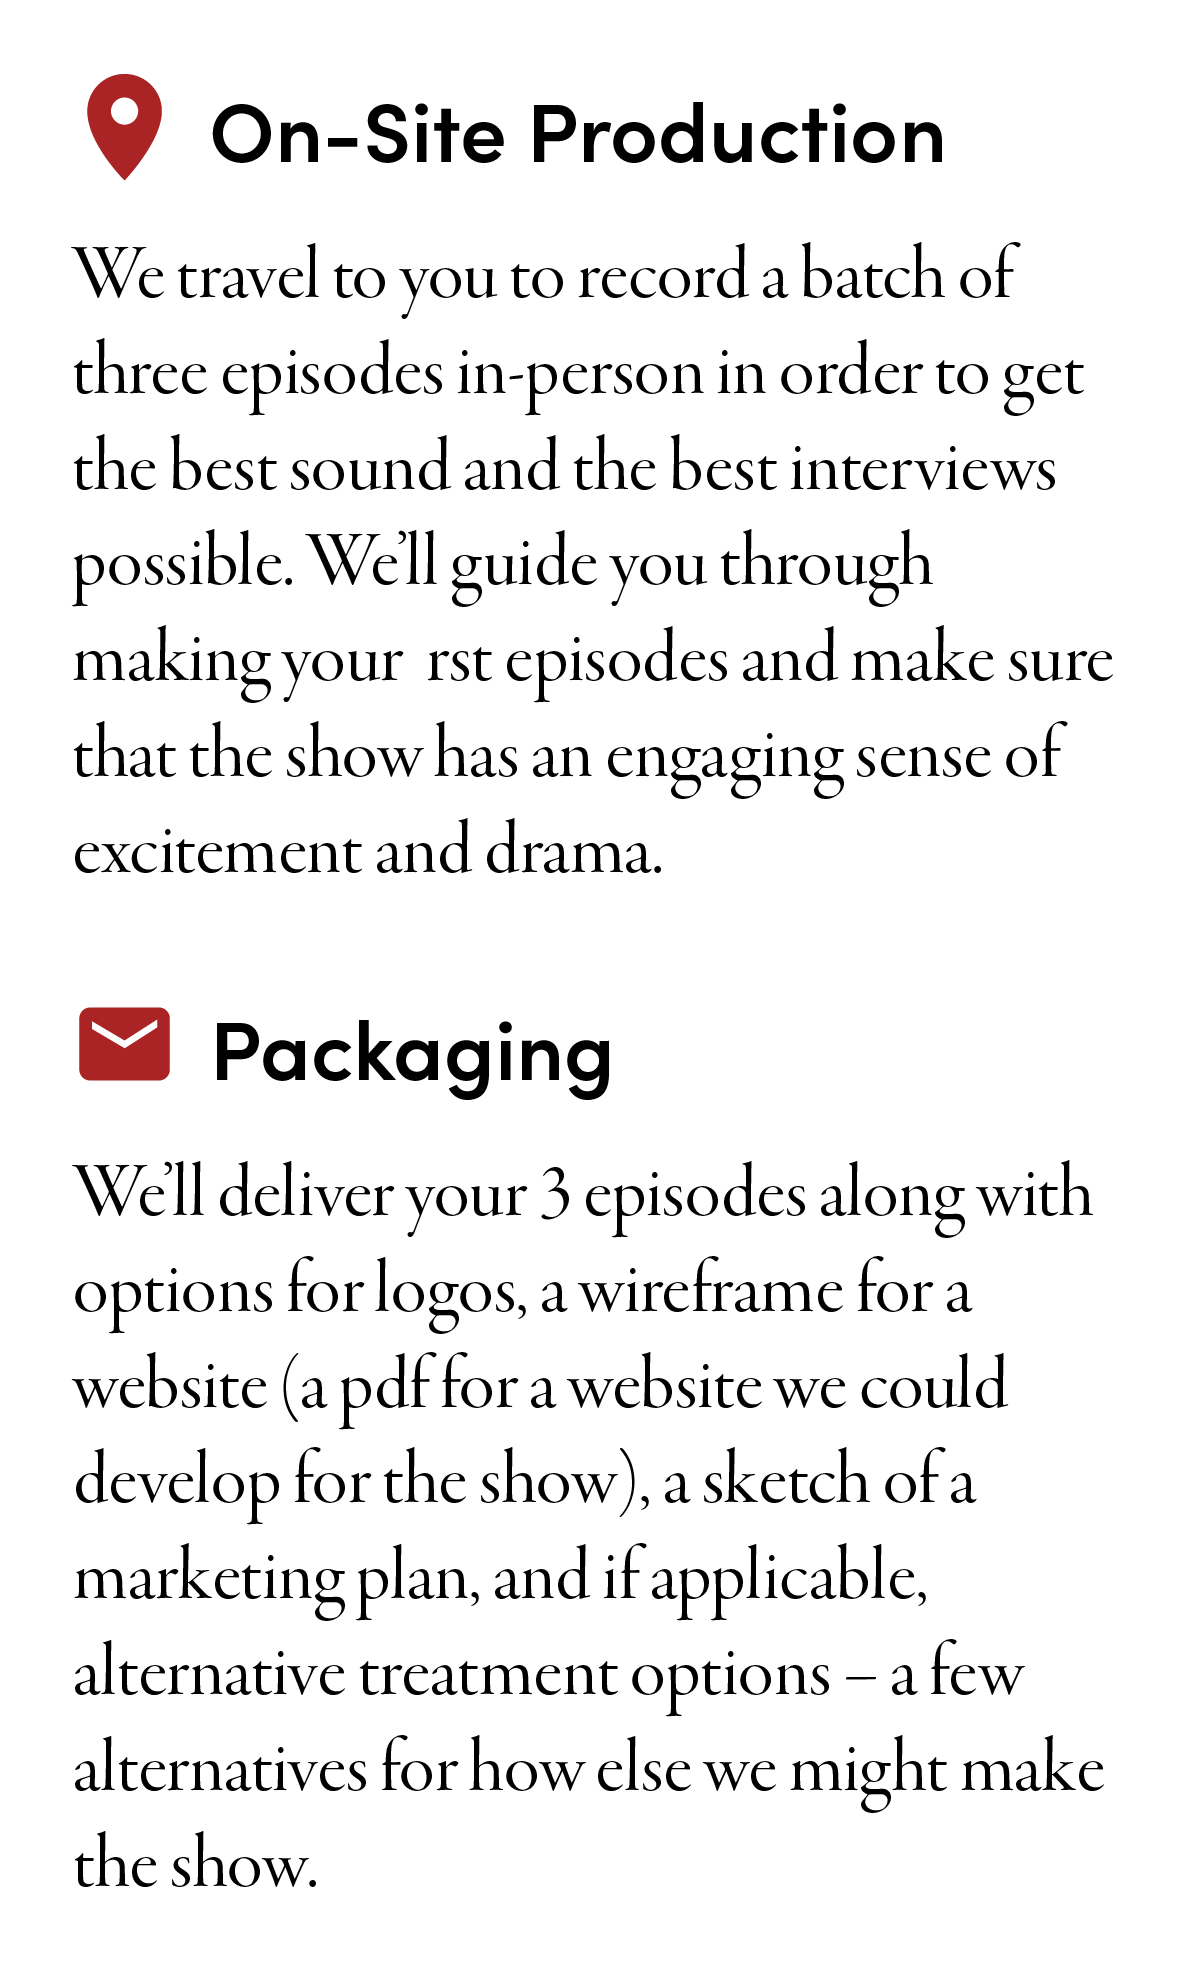 on-site & packaging-02.png